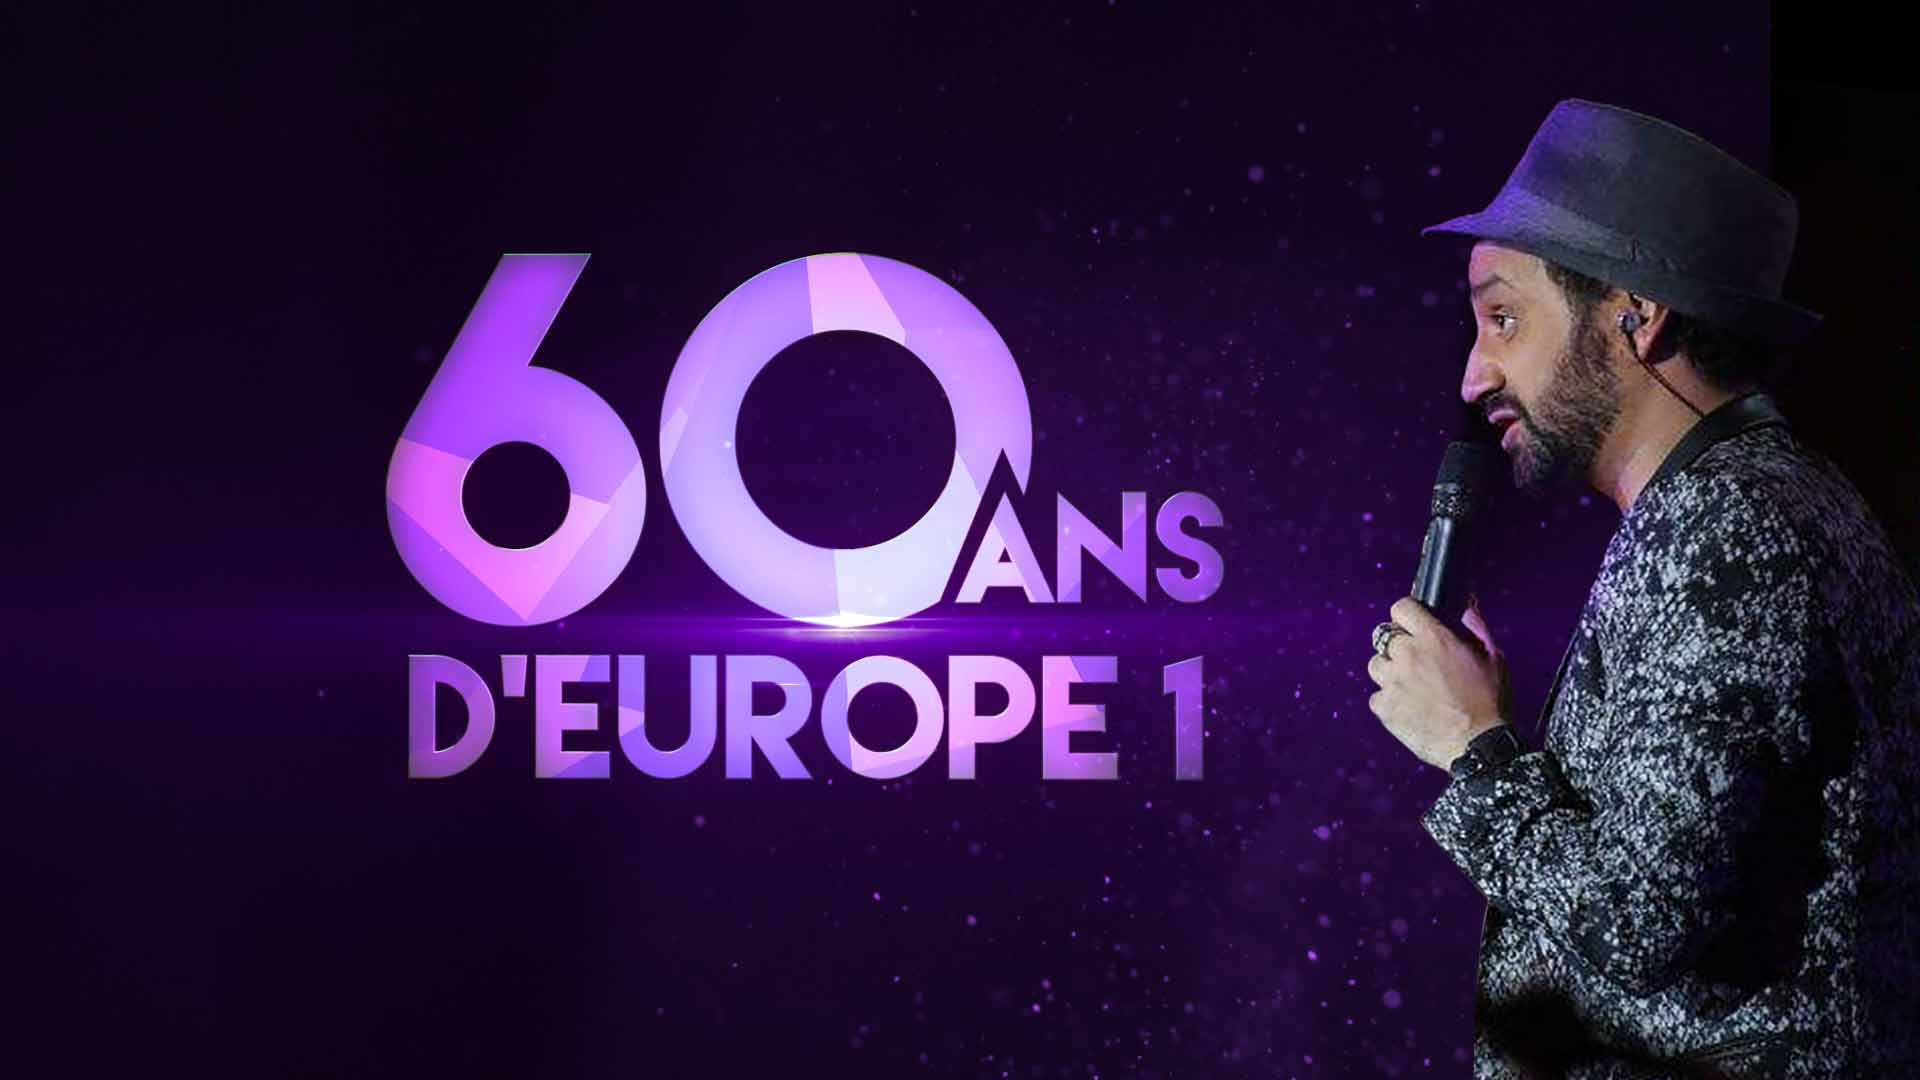 60 ANS D'EUROPE 1